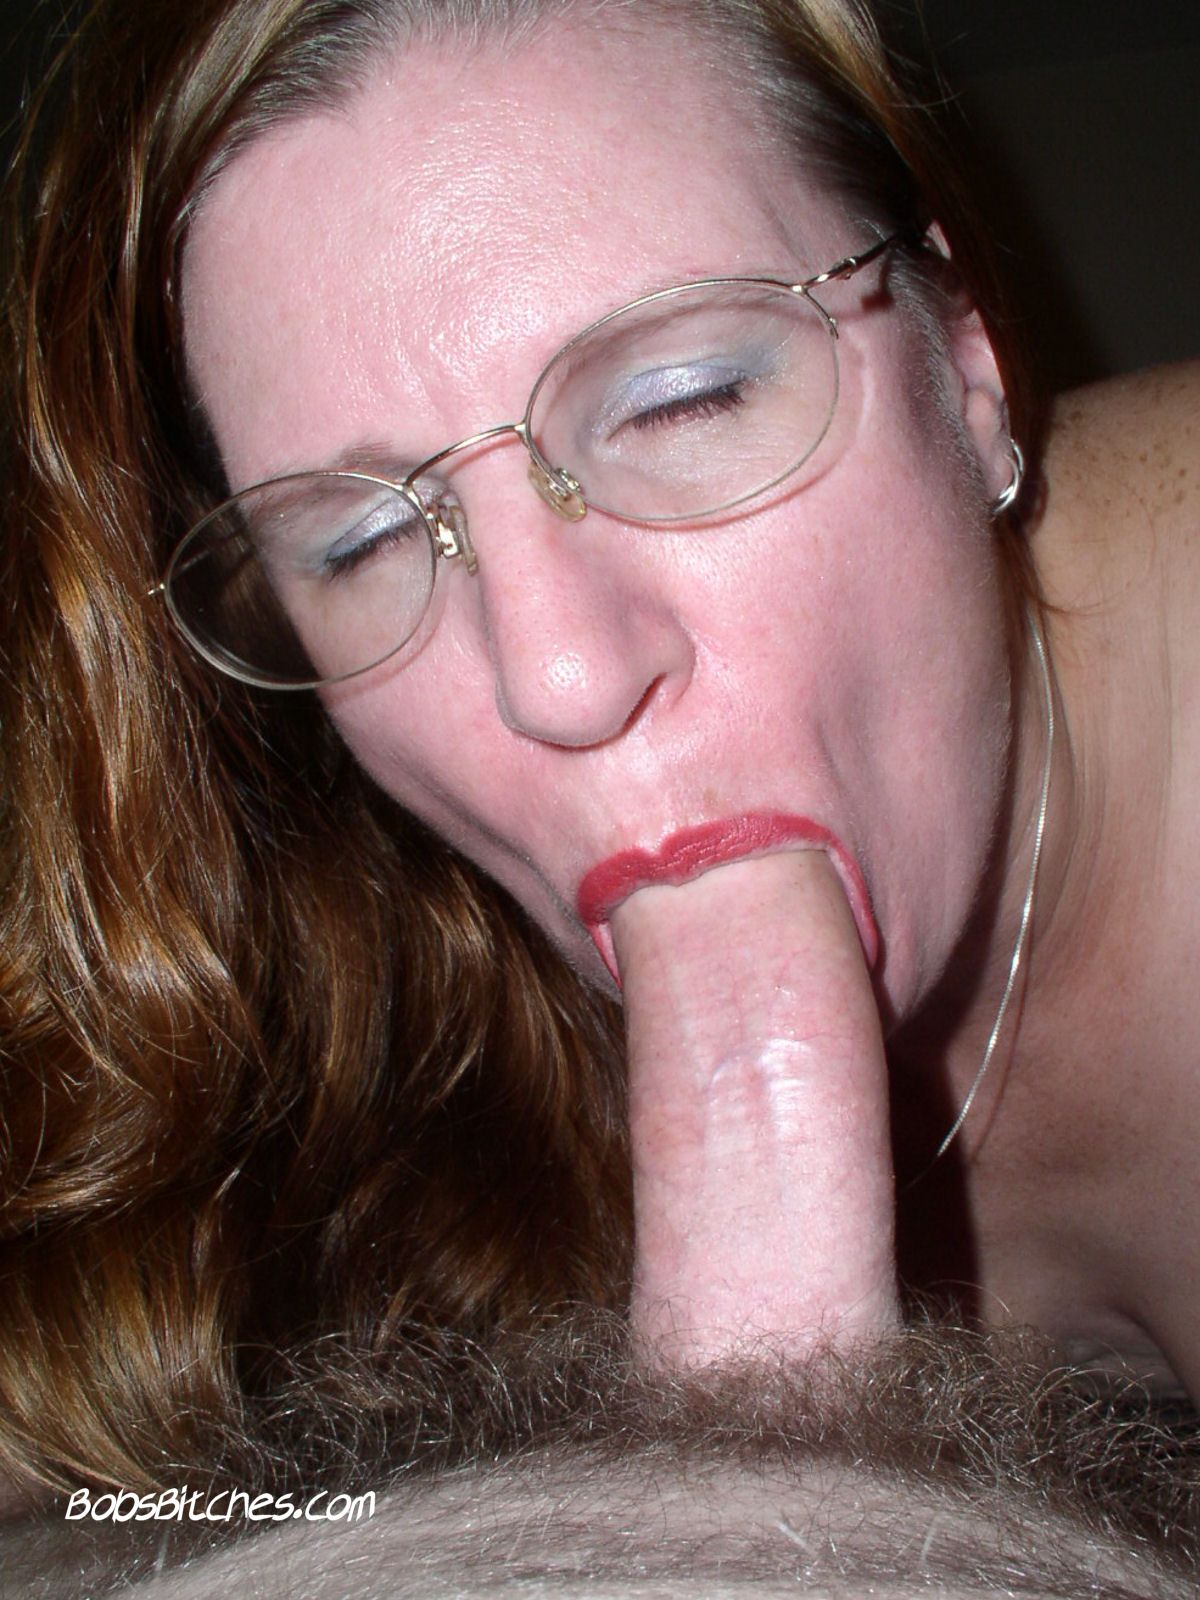 Milf Karen gives an amazing blowjob.